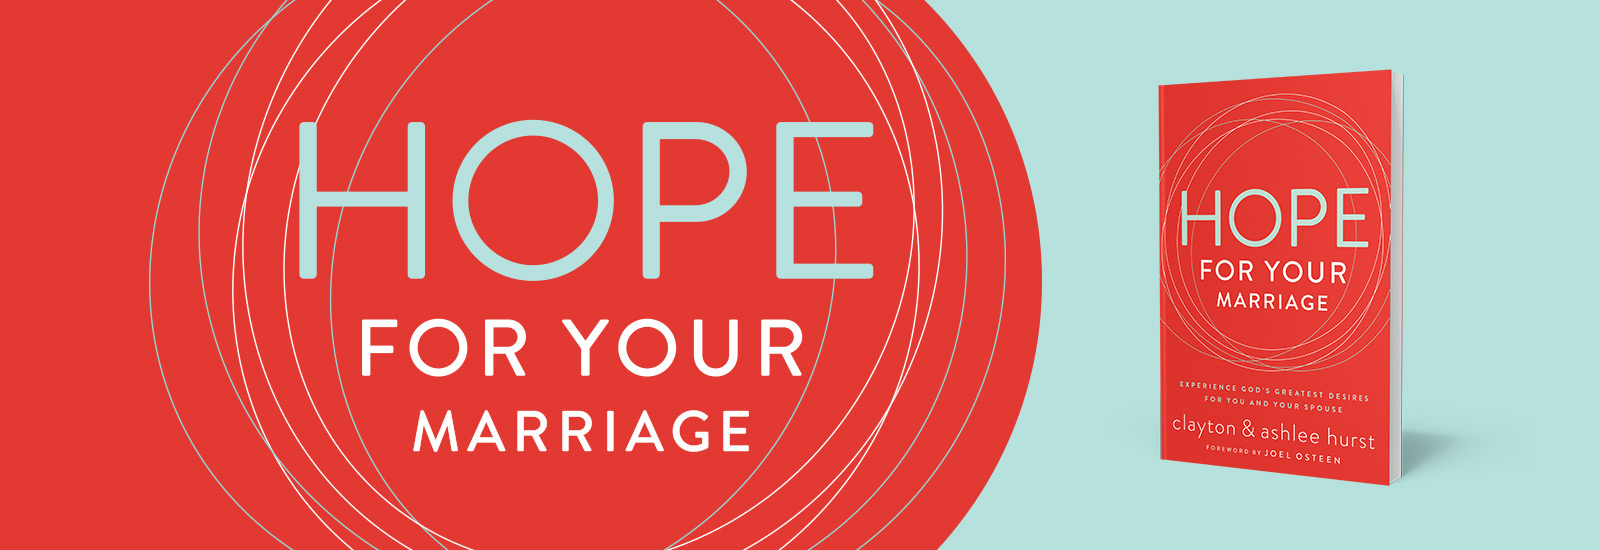 Hope For Your Marriage Header